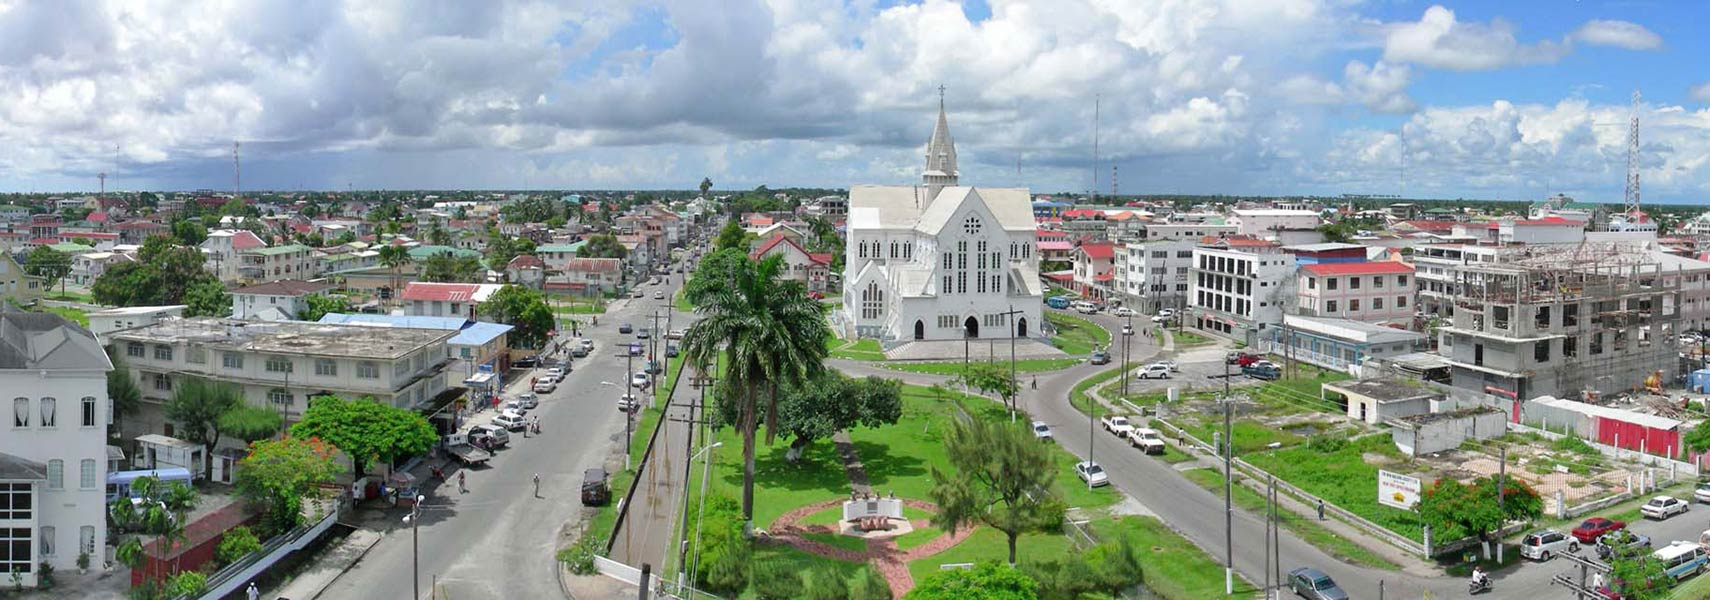 Google Map of Georgetown Guyana Nations Online Project